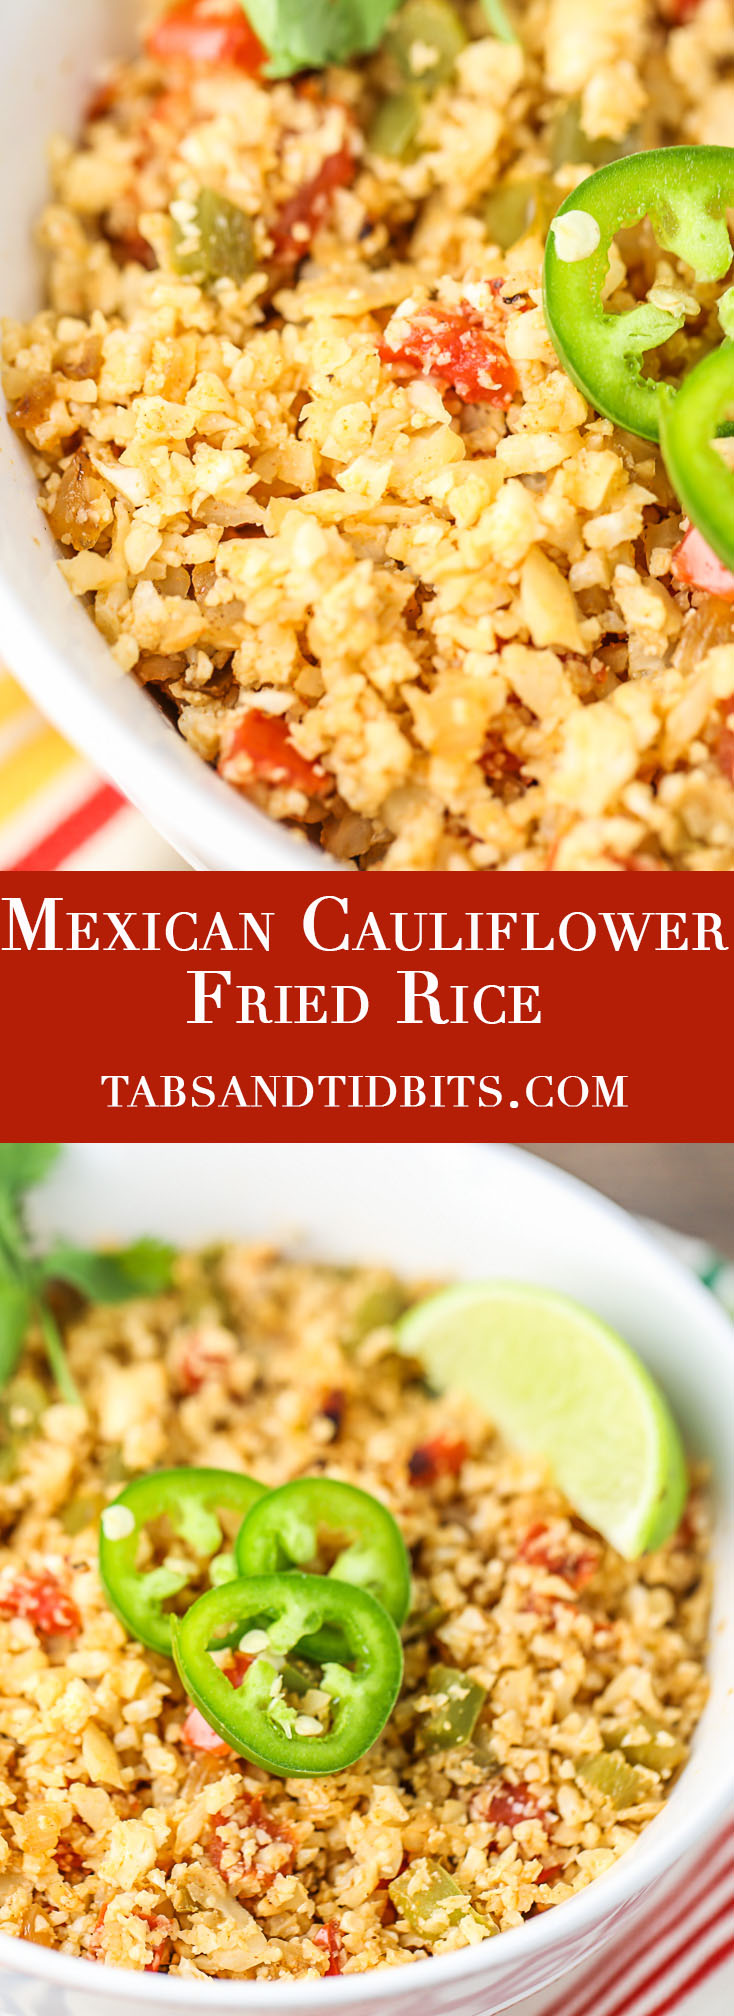 Mexican Cauliflower Fried Rice